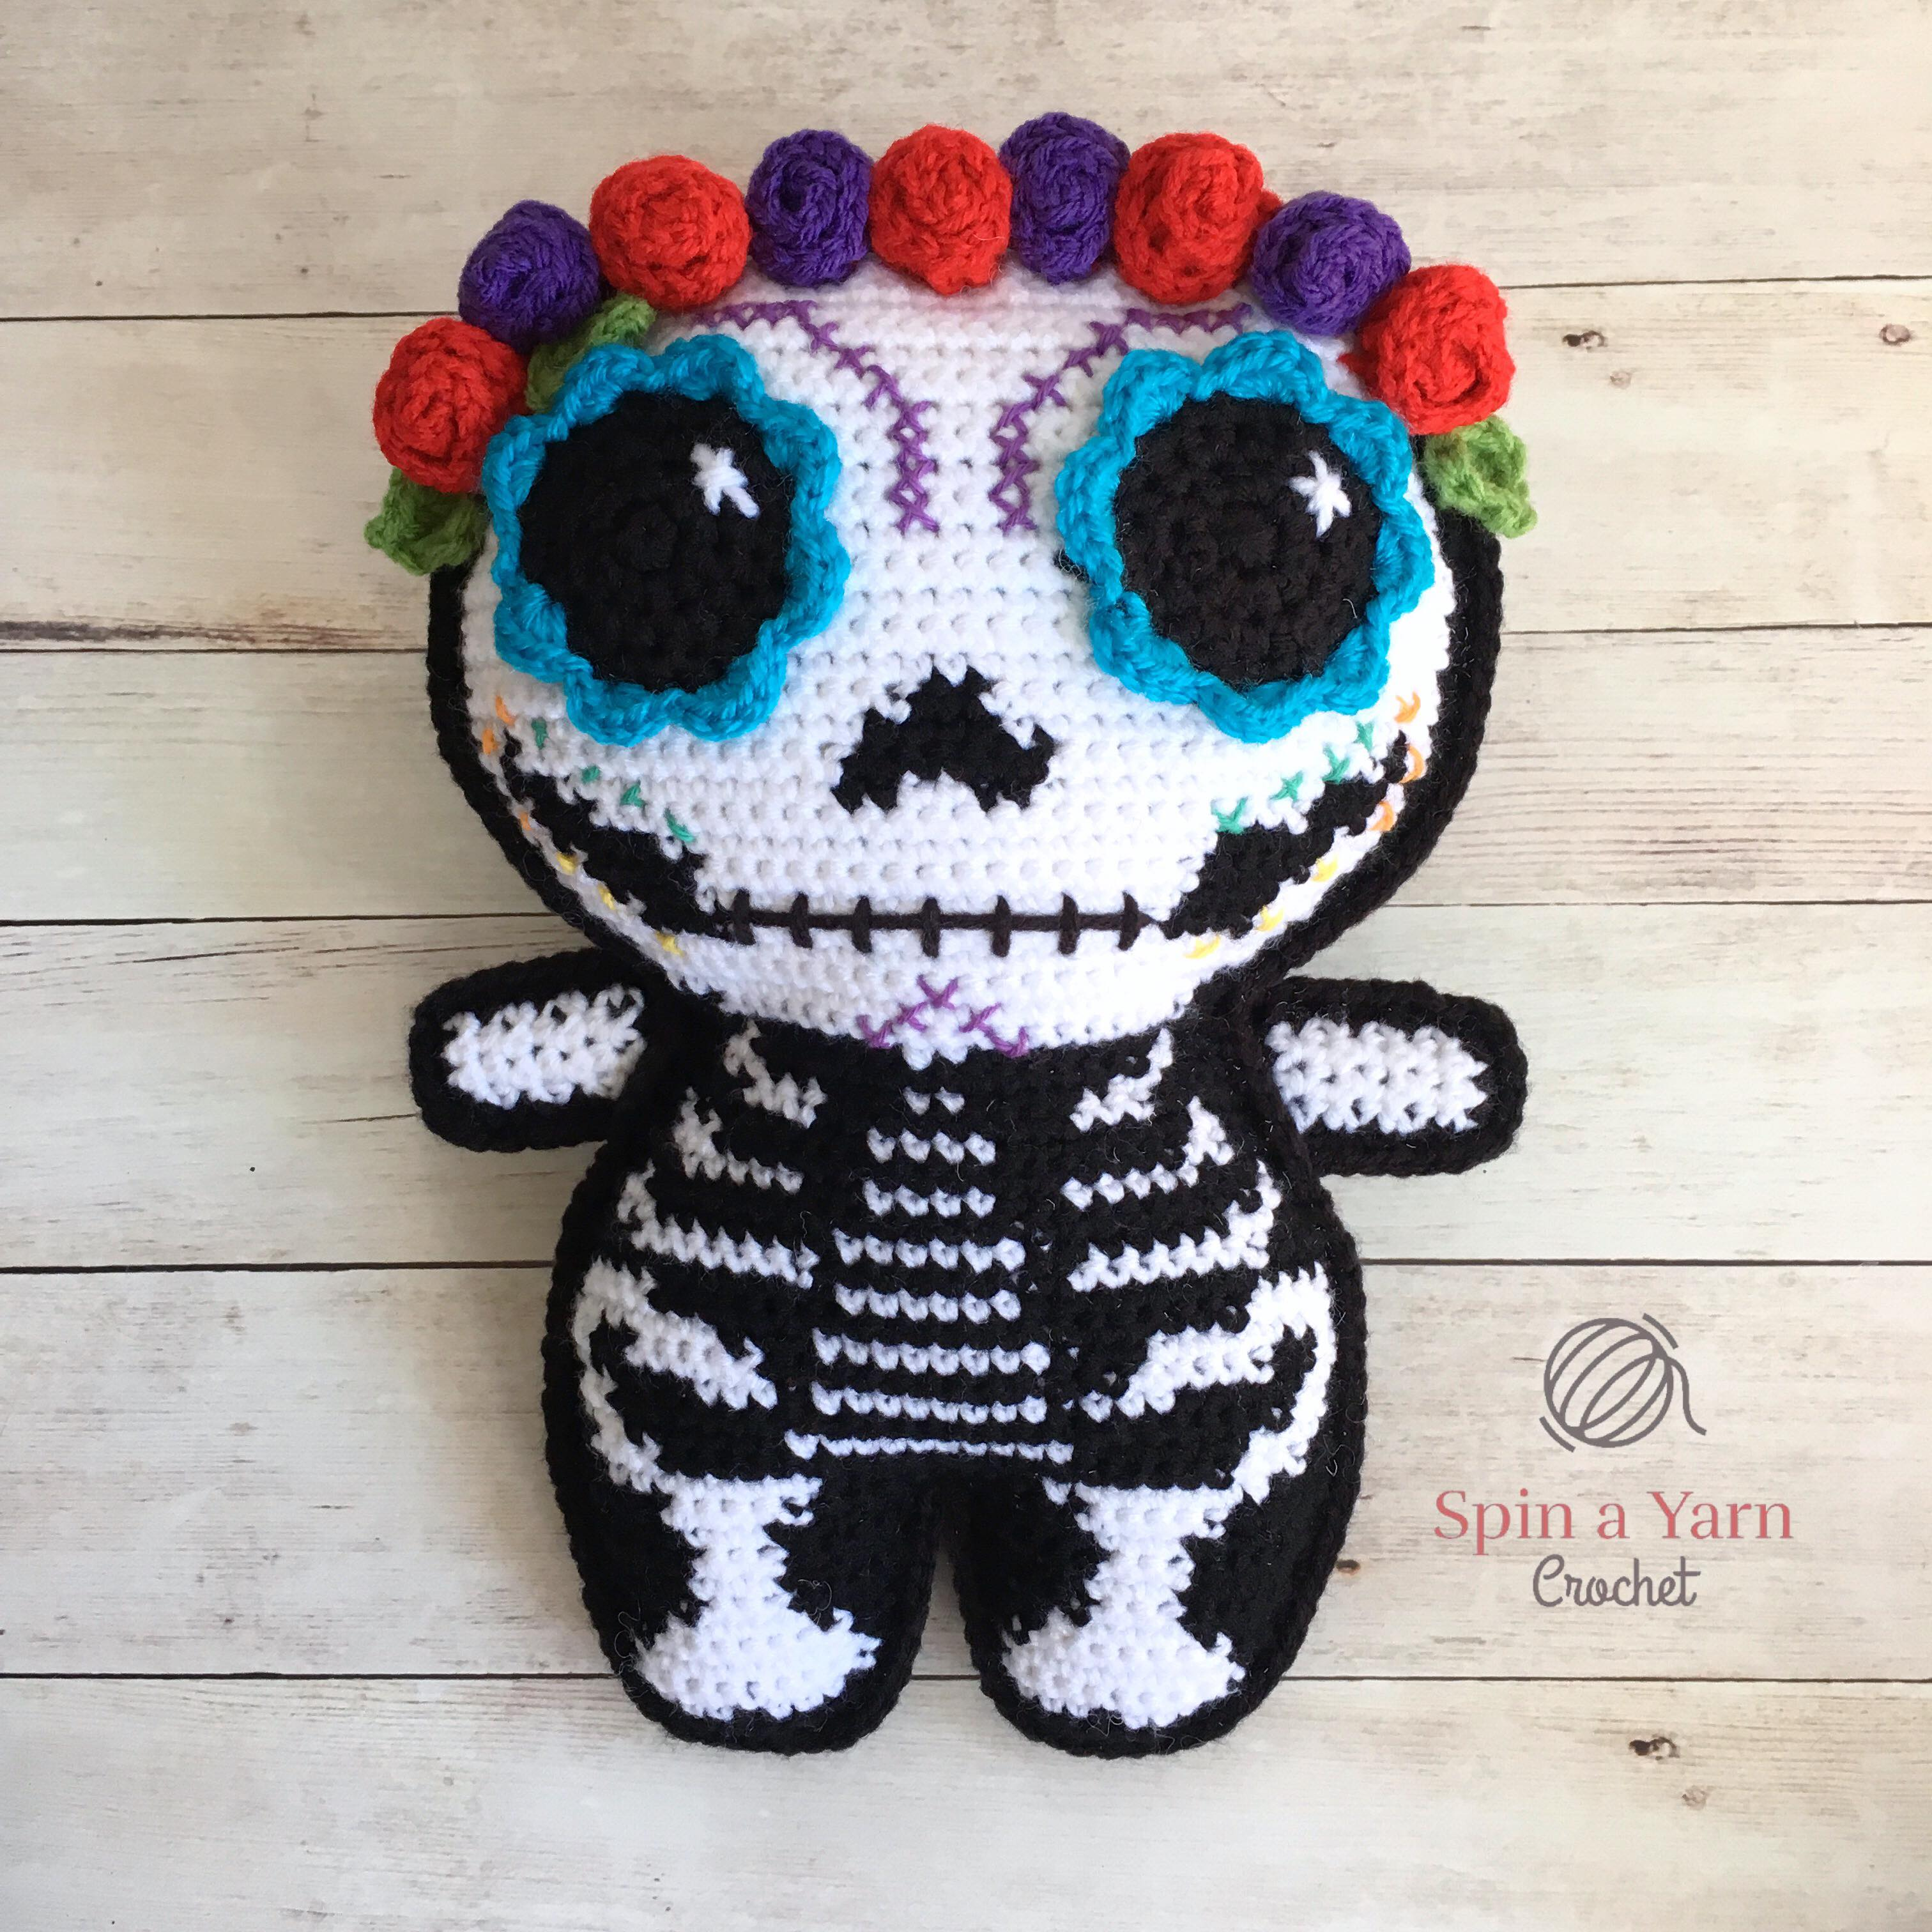 Tooth crochet pattern - free molar crochet pattern | 3024x3024